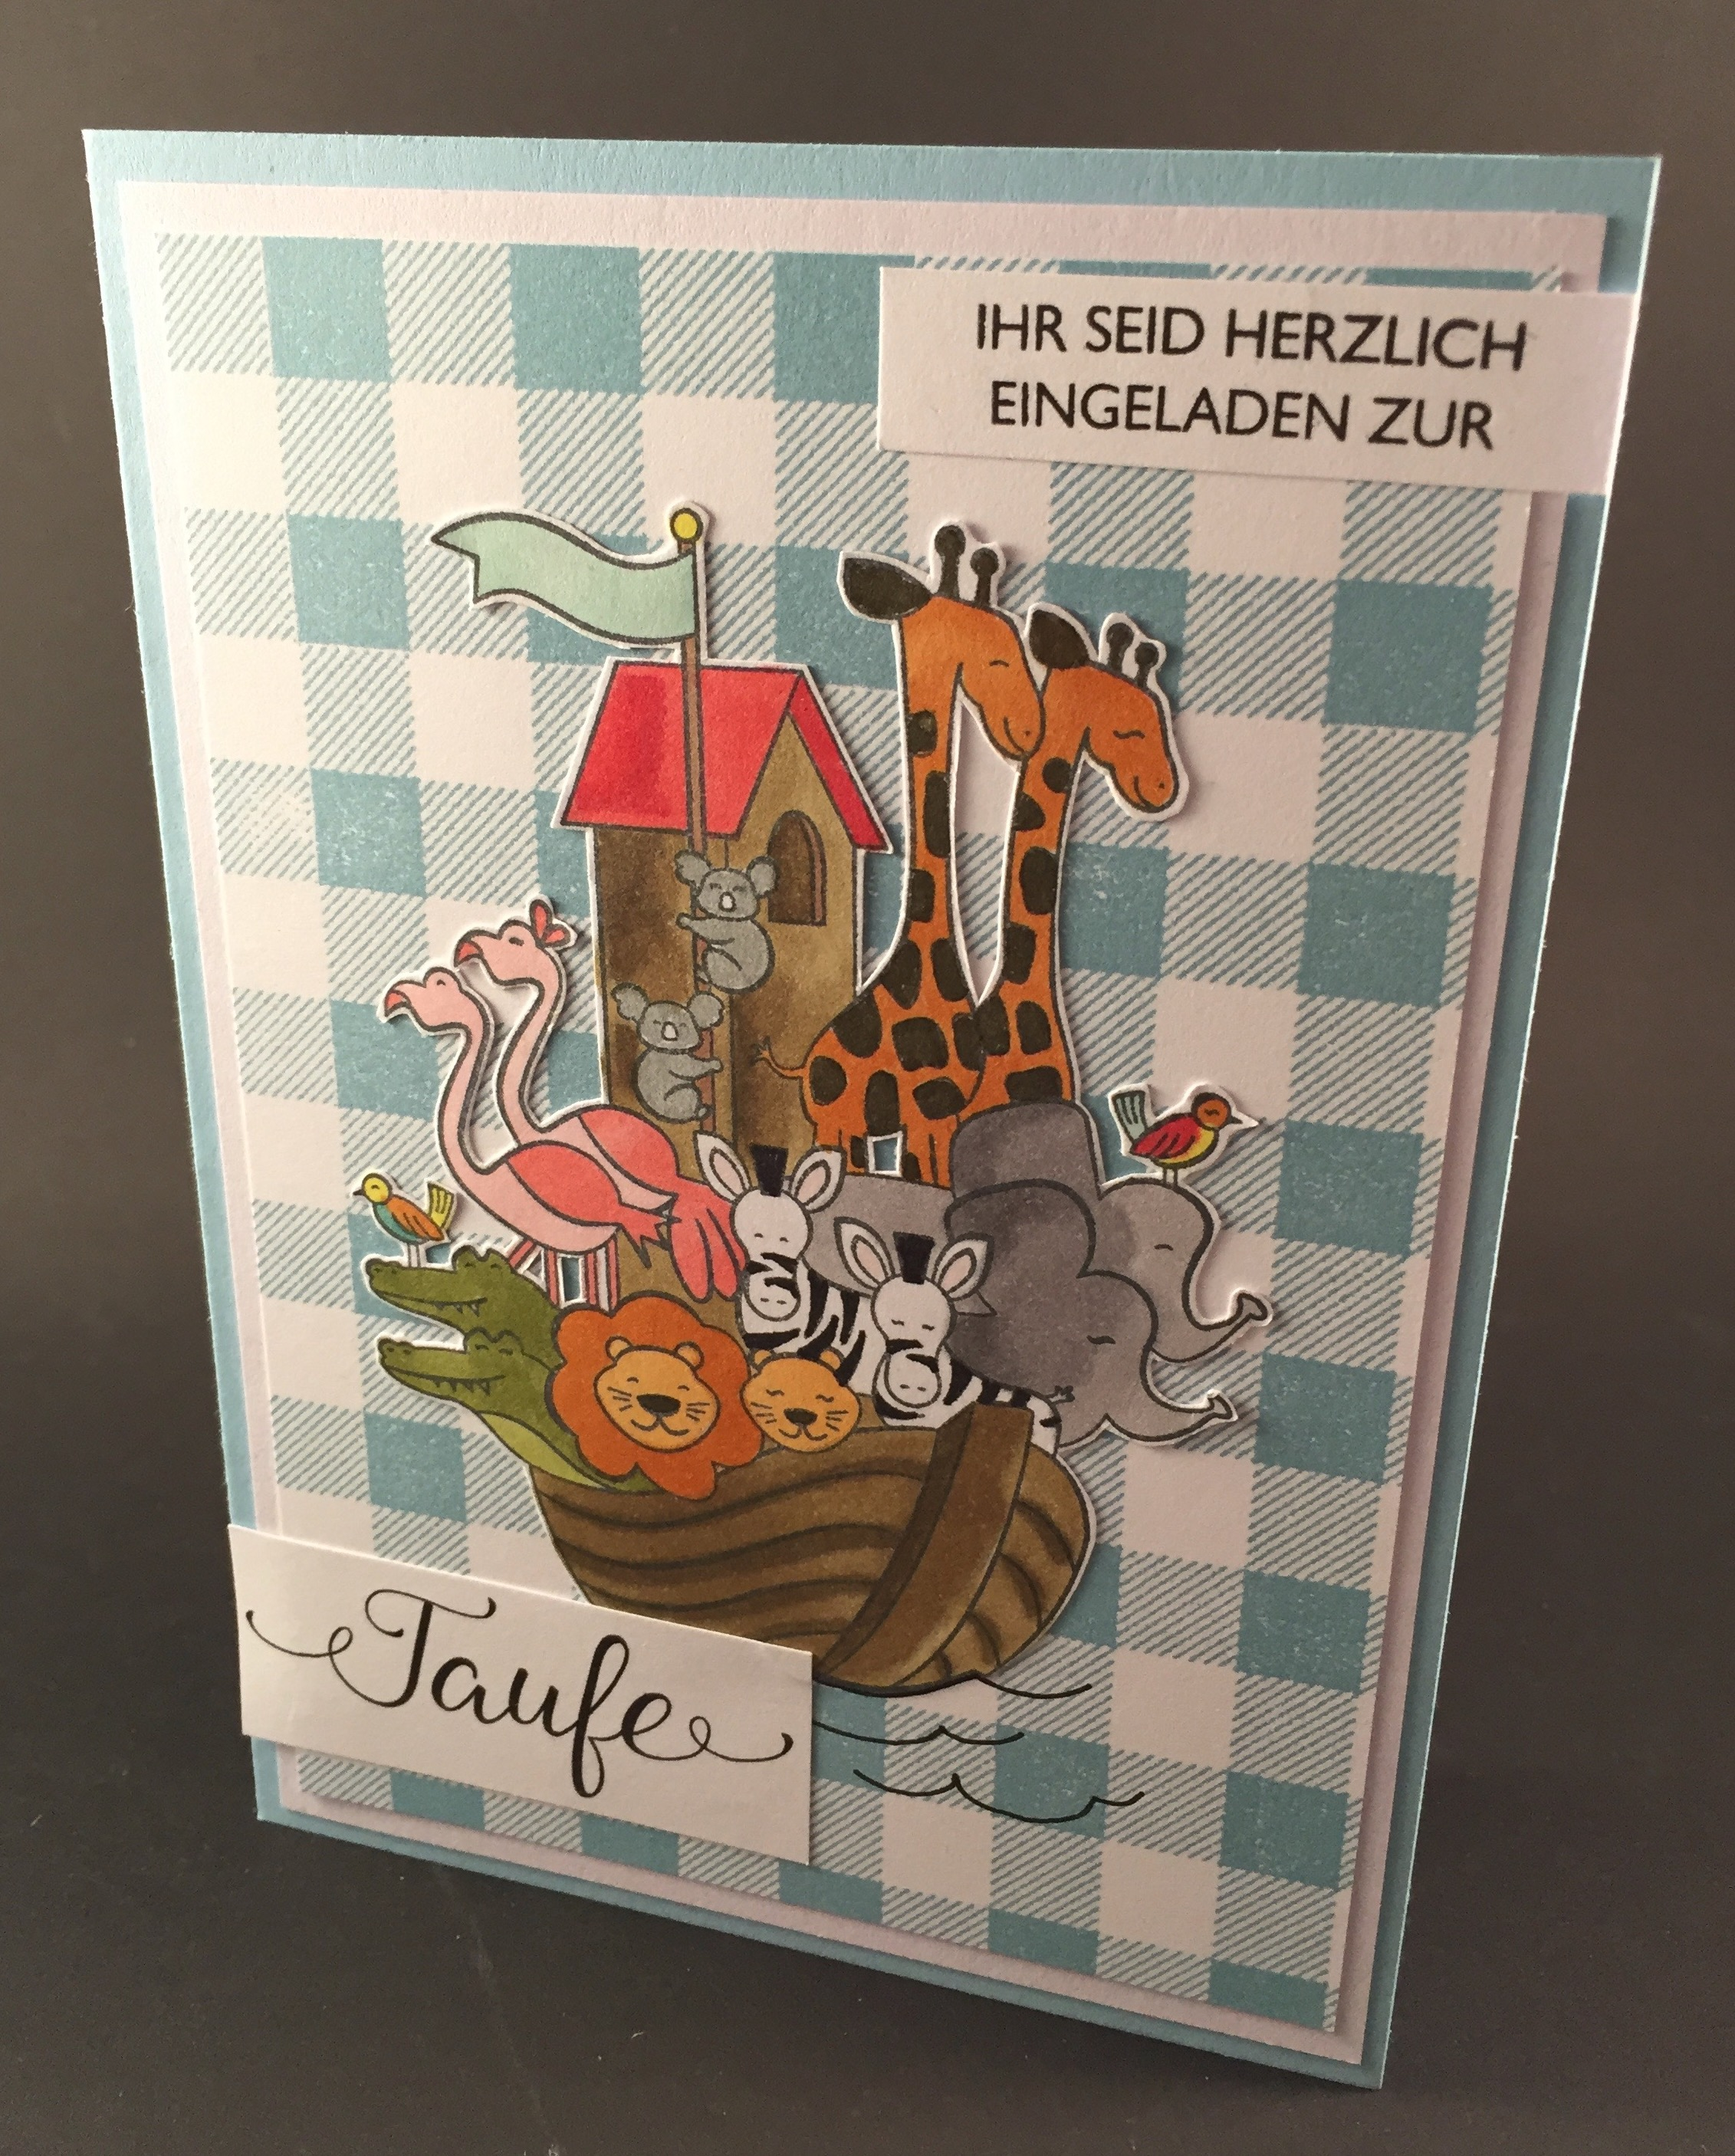 Stampin up - Einladungskarte - Perfectly Paired.jpeg